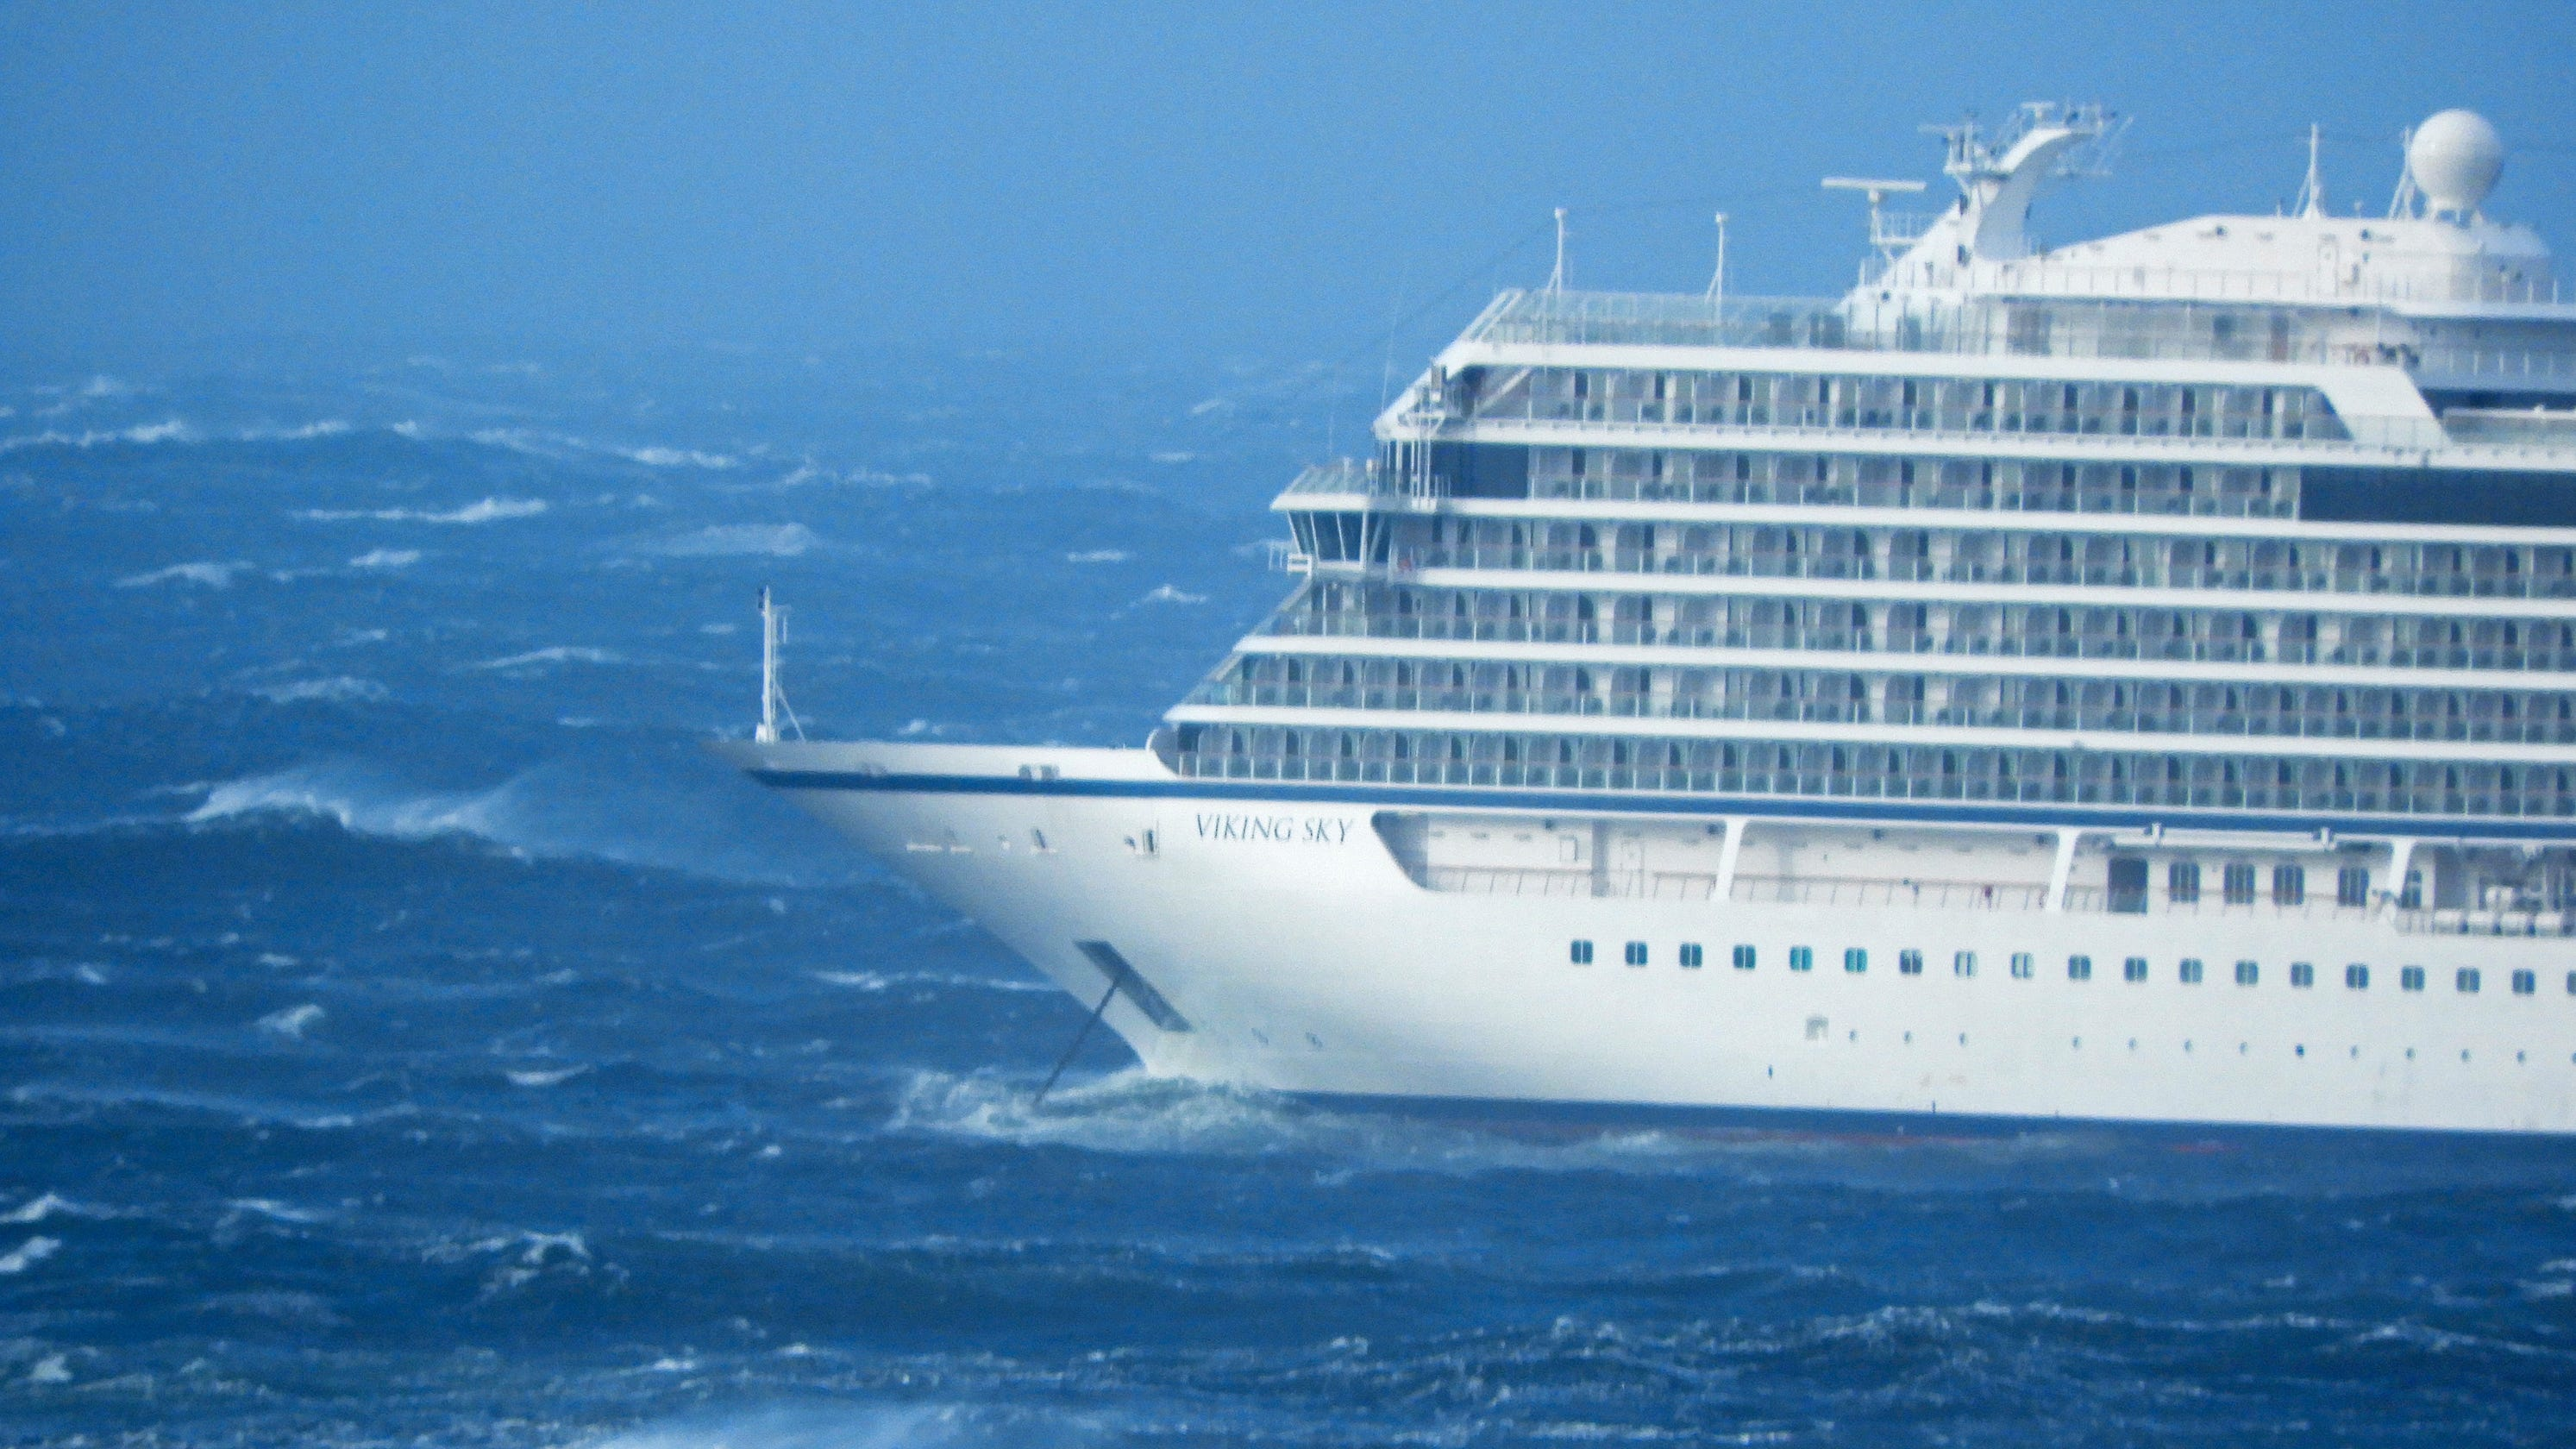 Cruise ship off Norway issues mayday, begins evacuating 1,300 passengers and crew